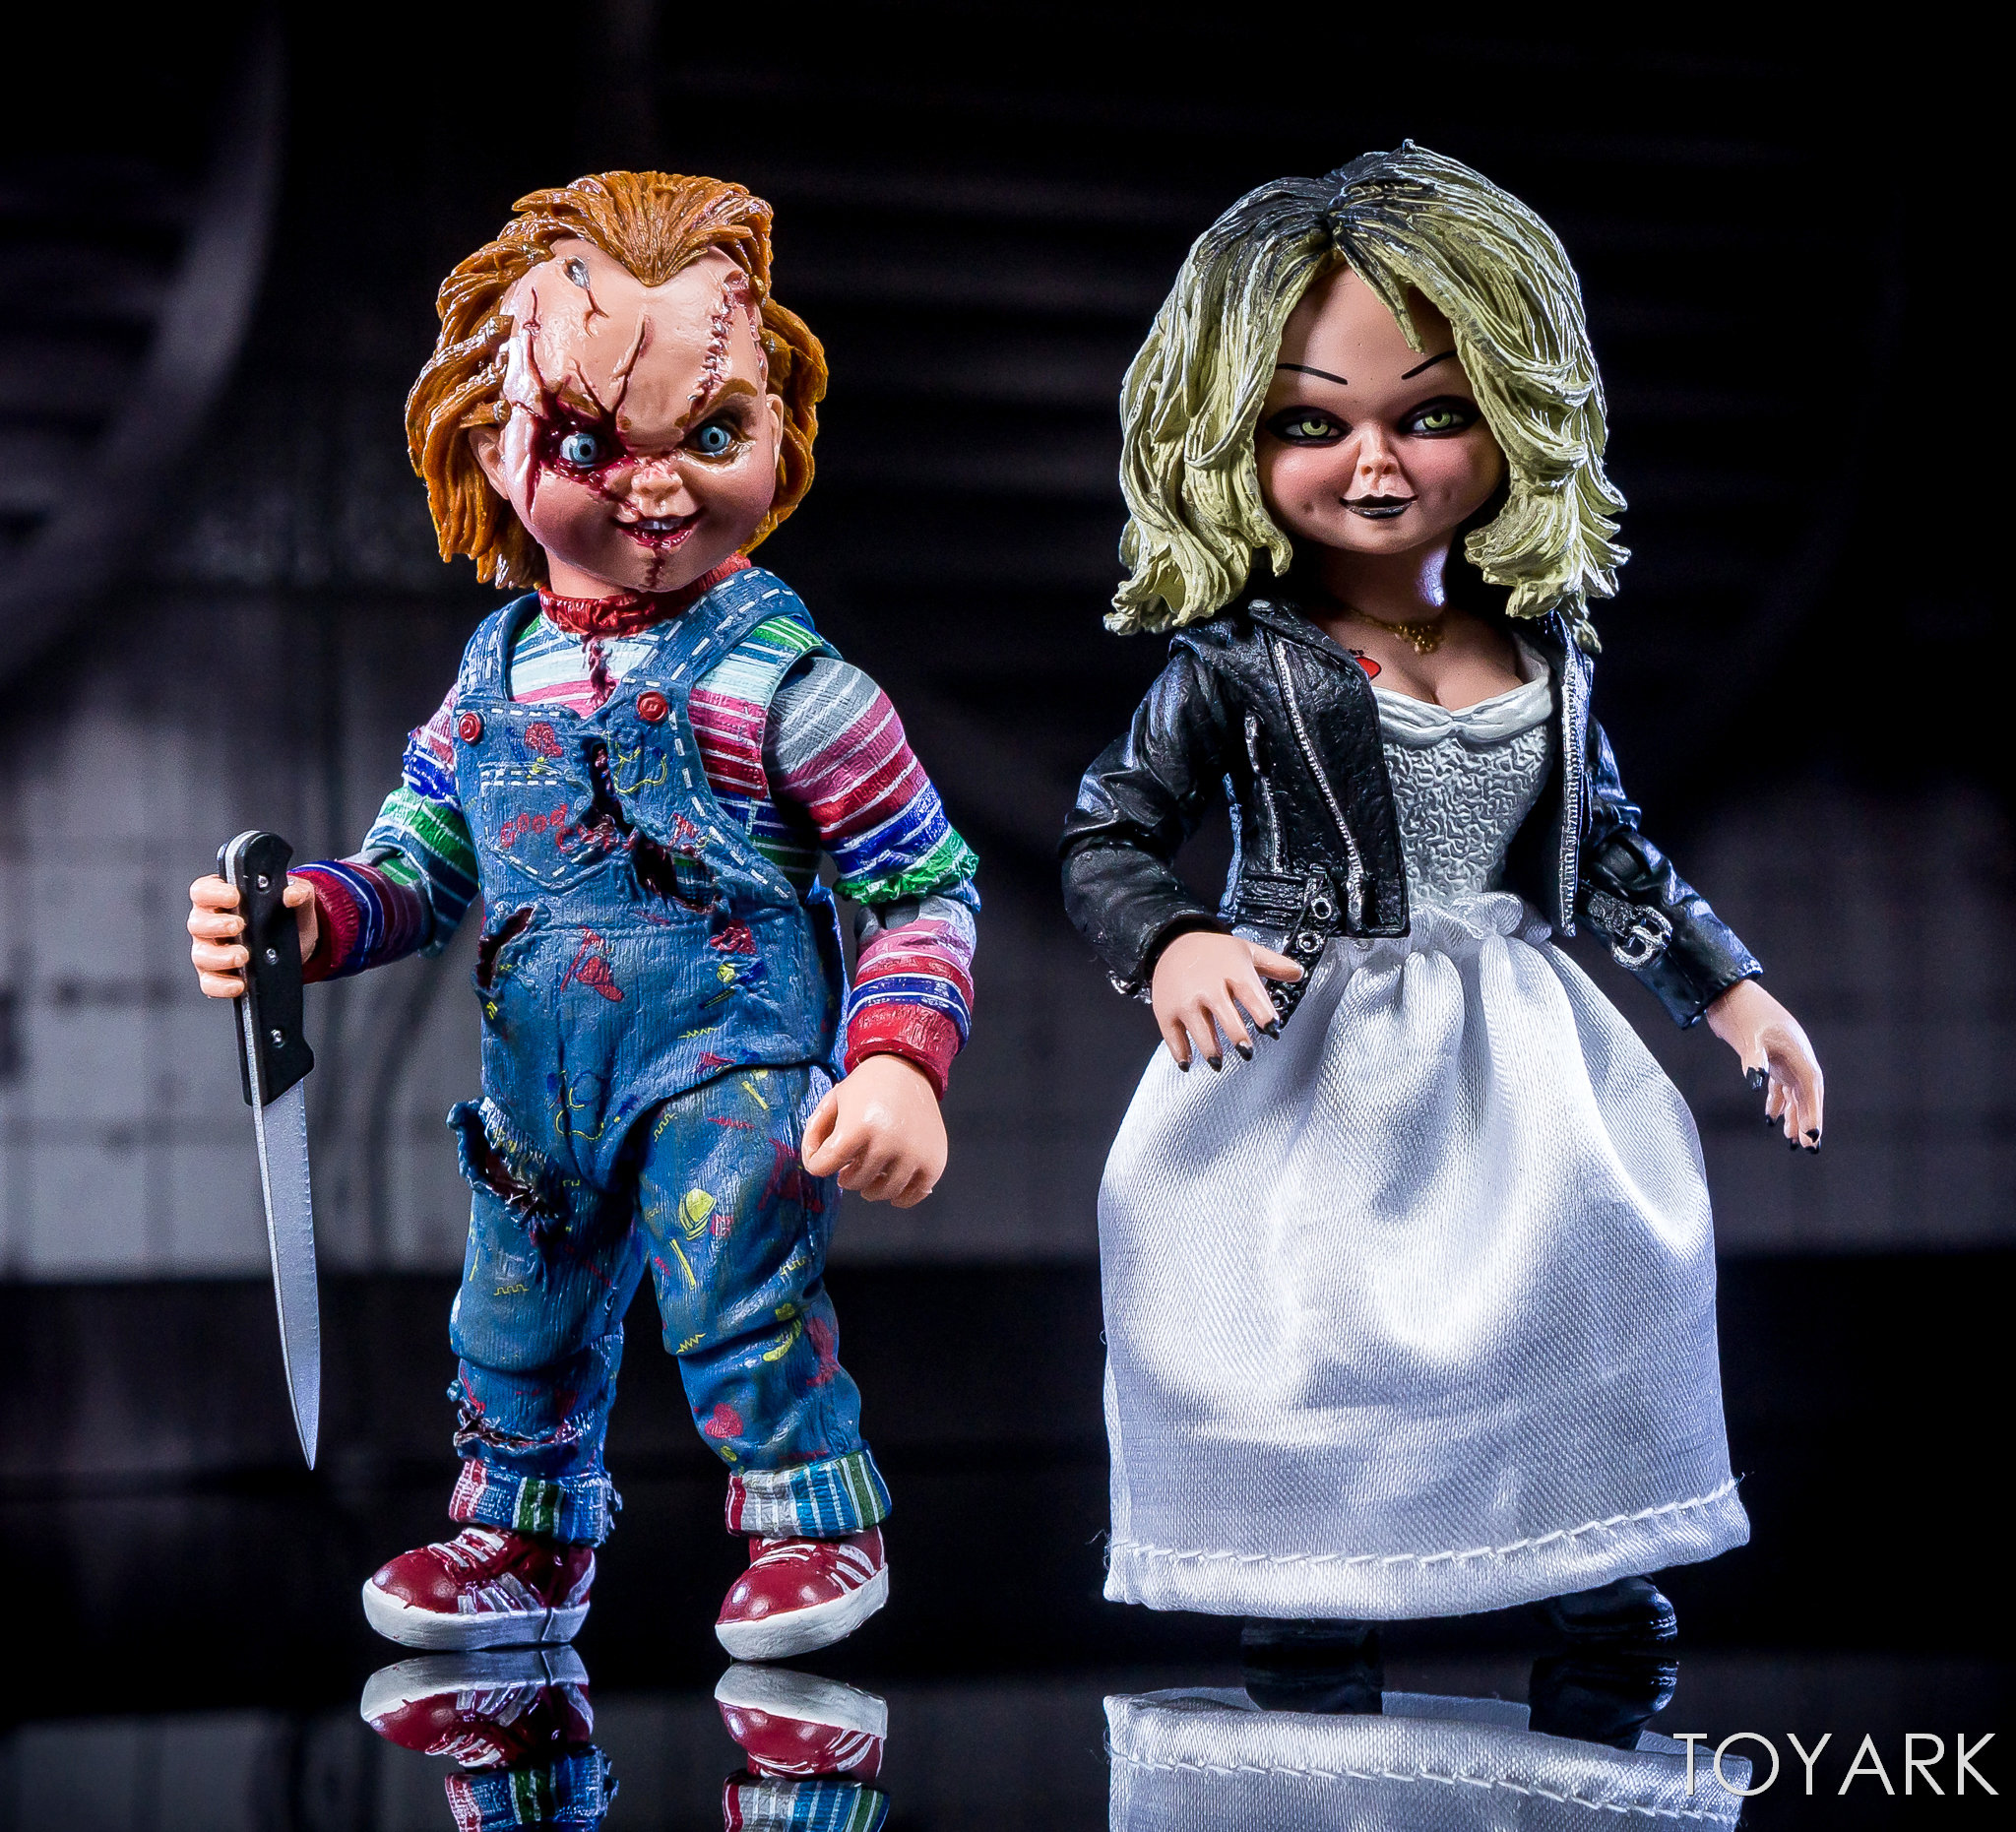 https://news.toyark.com/wp-content/uploads/sites/4/2019/01/Bride-of-Chucky-NECA-Set-008.jpg